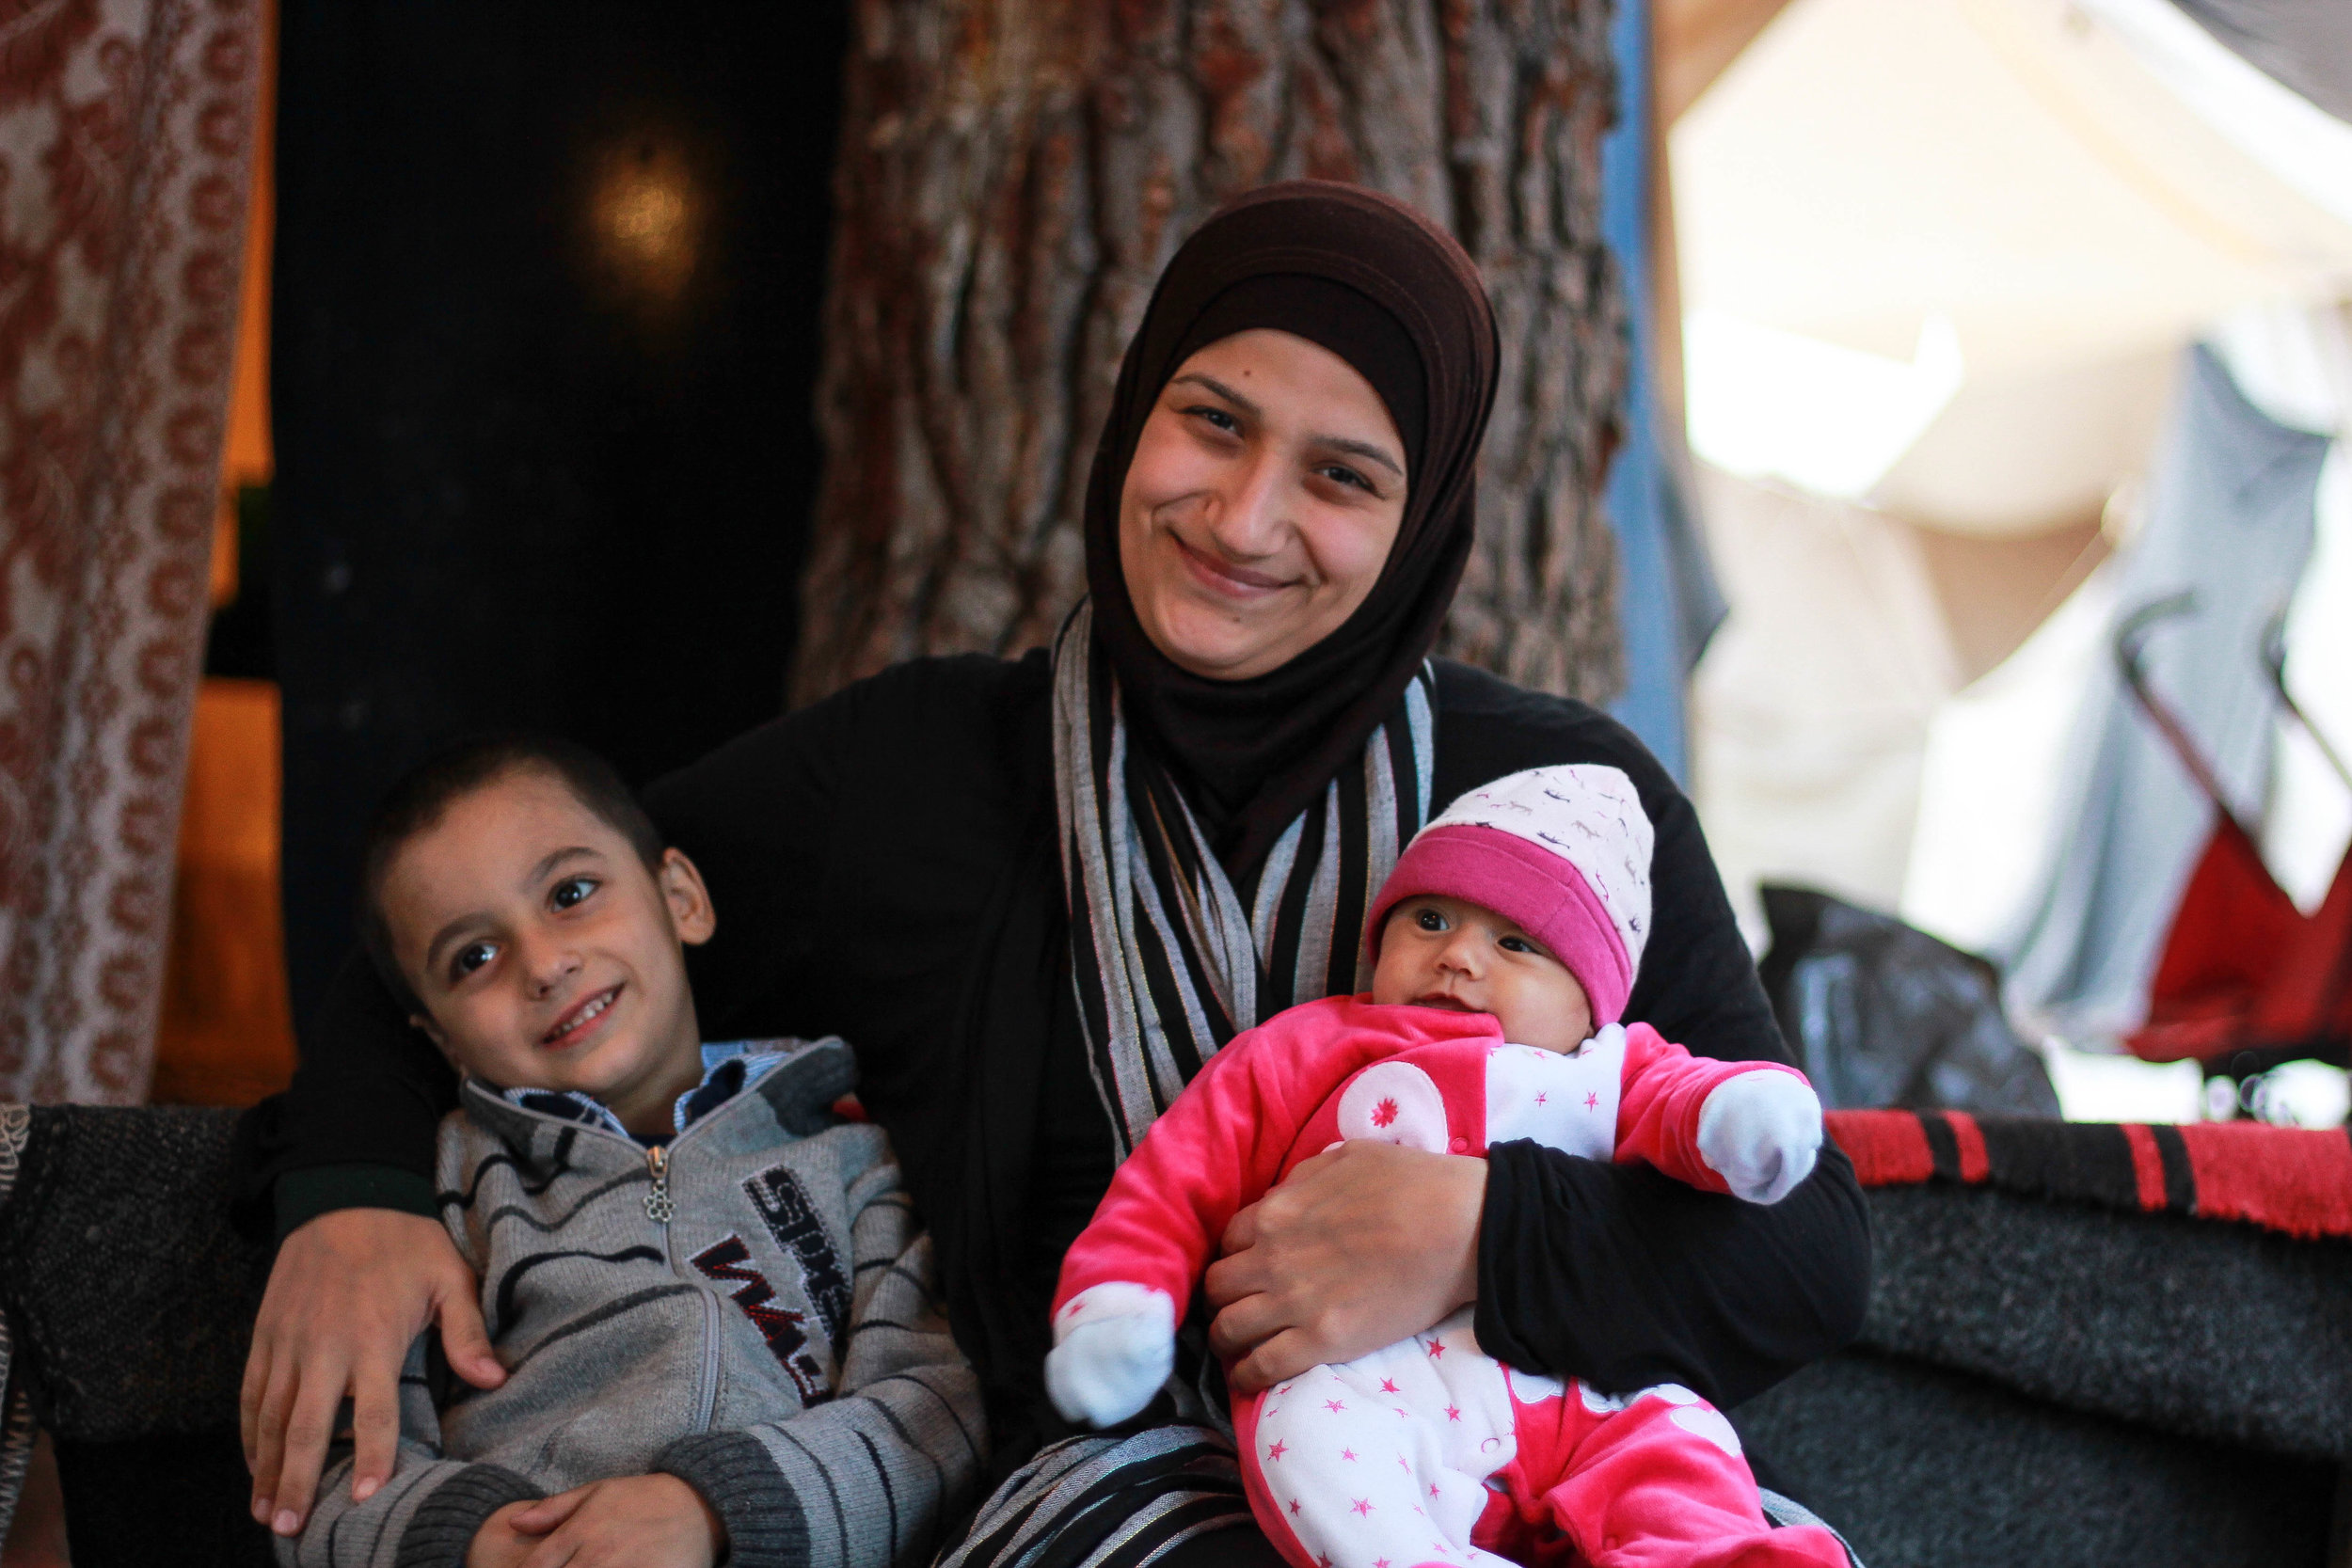 """Hala Baroud, 28 years old, from Latakia, Syria / Photo: Shayanne Gal   """"When we arrived at the refugee camp, I cried and cried. 'How can we live here, in tents, in the middle of a forest, when it is so cold and muddy?' I told my husband. It took me two months to get used to the idea that this was our life now, that we are truly refugees.""""   """"One of the most difficult things for me here is the feeling that I have lost my family, my husband, and I have lost my son here. We used to have it all, but now we depend on the volunteers for food, for clothes, for everything. We have to ask for the smallest things, like some washing powder - it is humiliating. My son asks me for something but I cannot buy it for him, so he asks the volunteers instead. He has become a beggar, like a street child, and I cannot stand to see that. I feel like I have lost him to this place."""""""